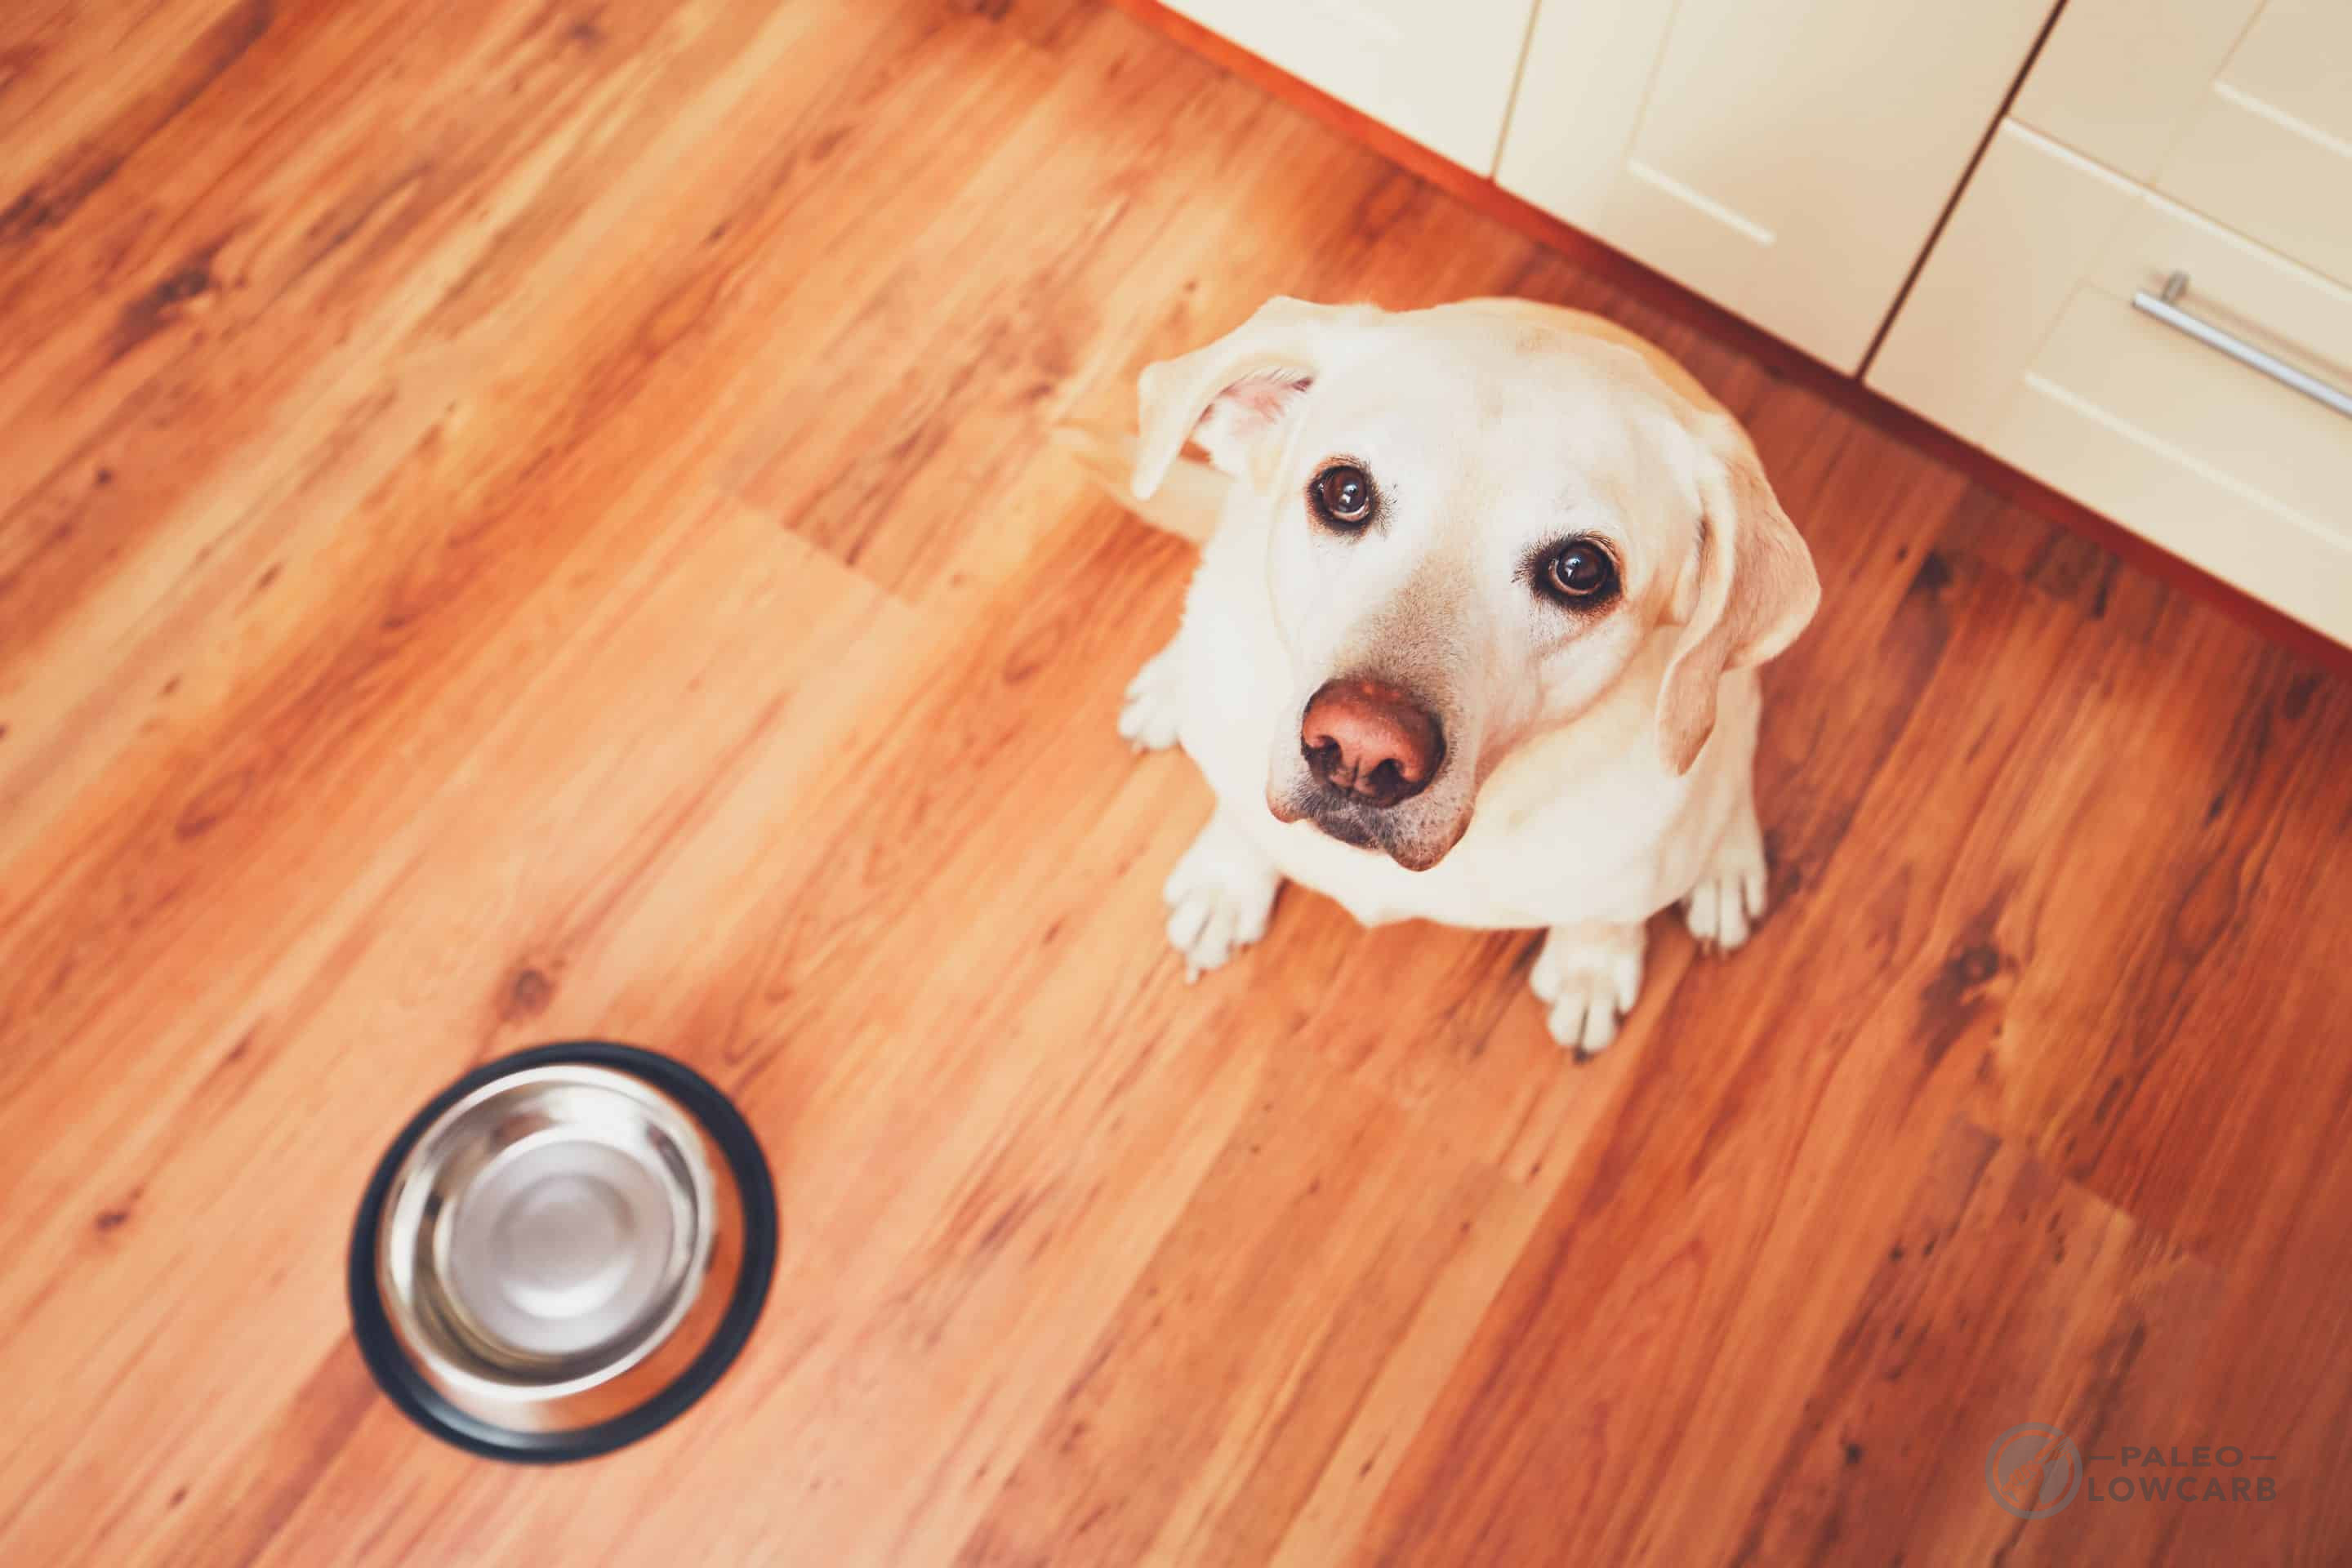 Hungry dog waiting for feeding (c) By Chalabala licensed via envato elements